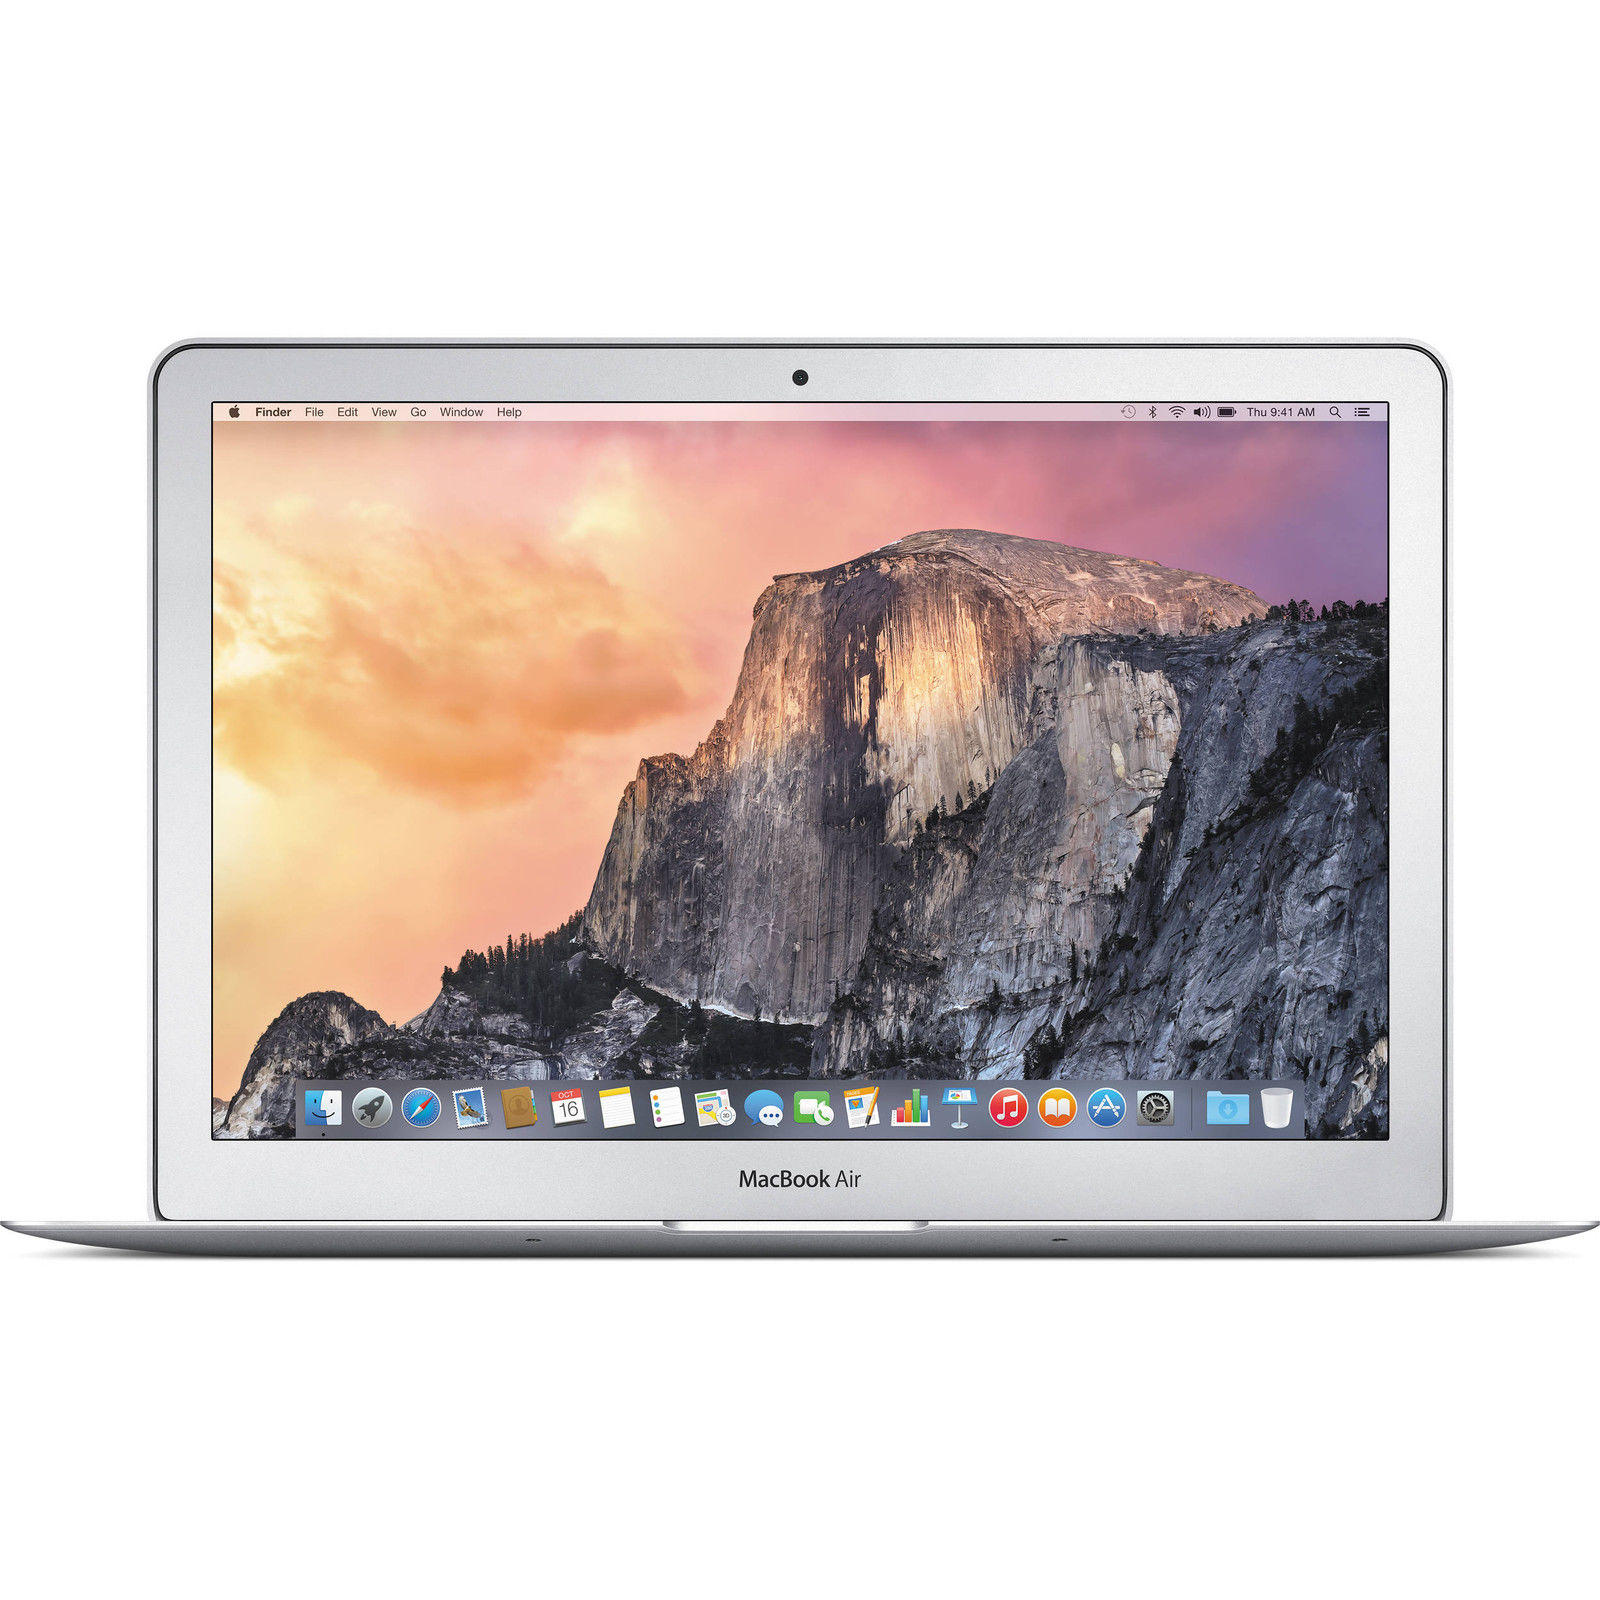 Newest Apple MacBook Air MJVG2LL/A 13.3-inch Laptop w/Intel Core i5, 4GB RAM